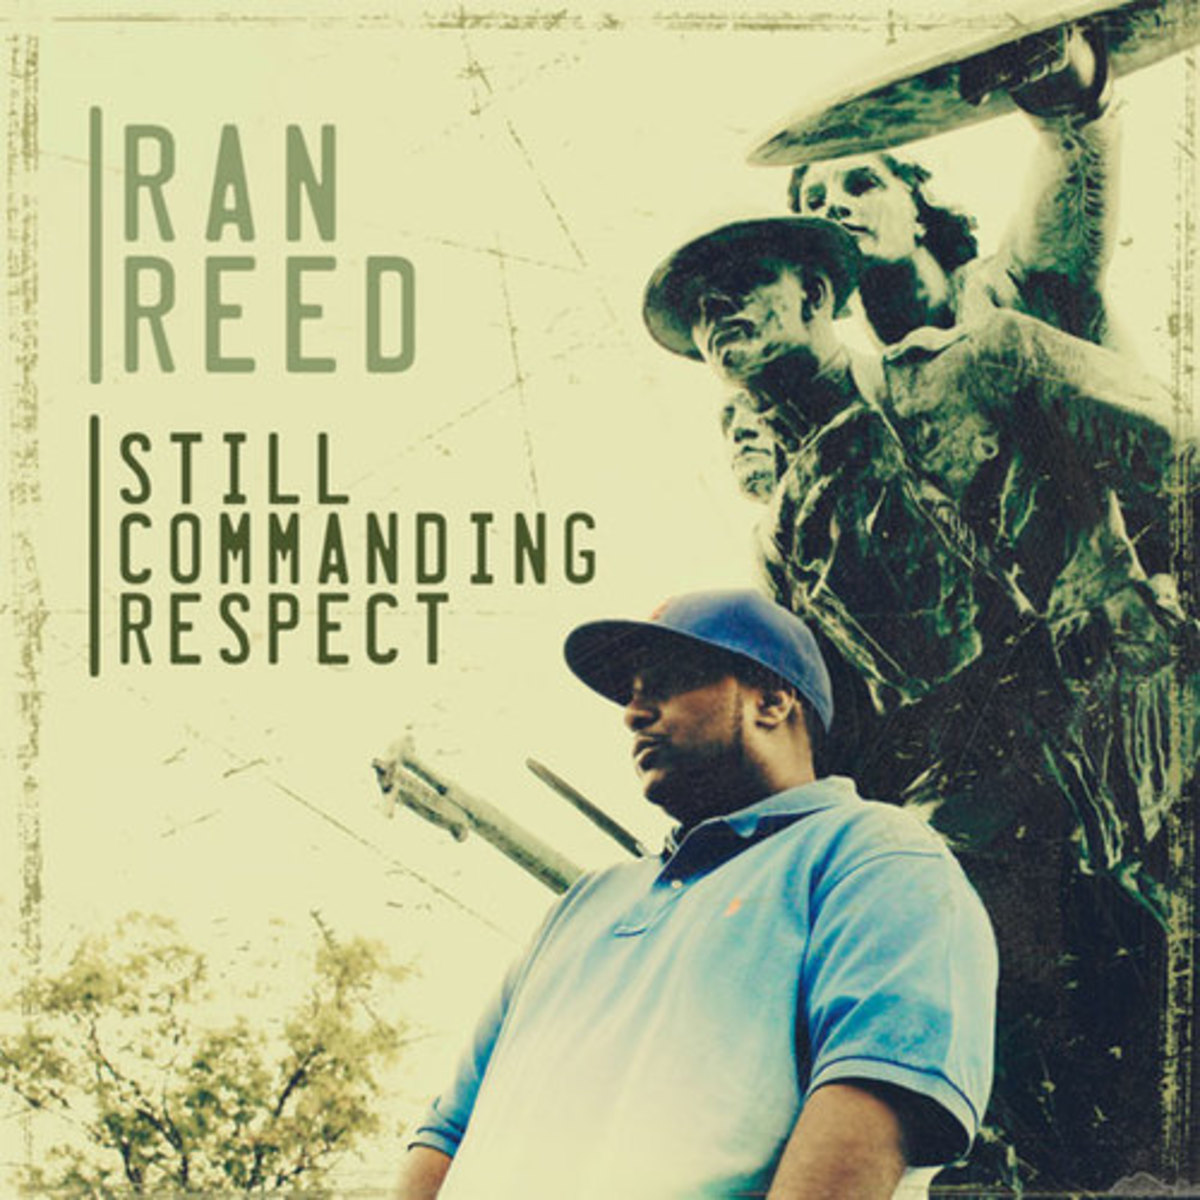 ran-reed-still-commanding-respect.jpg